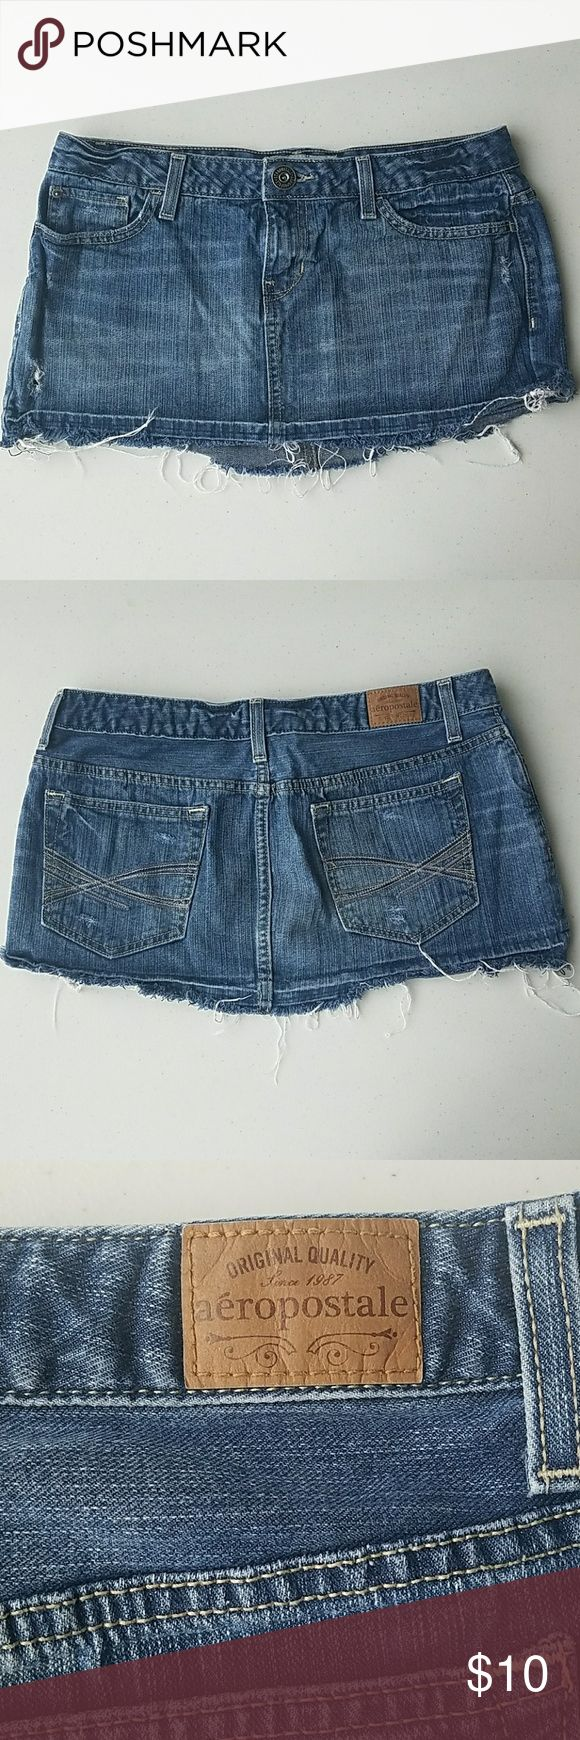 """Aeropostale distressed jean skirt Aeropostale distressed jean skirt.  Size 11/12. Approx waist 16.5"""", length 10.5"""". 100% cotton. Great condition! Holes and frilled ends are made for looks. Aeropostale Skirts Mini"""